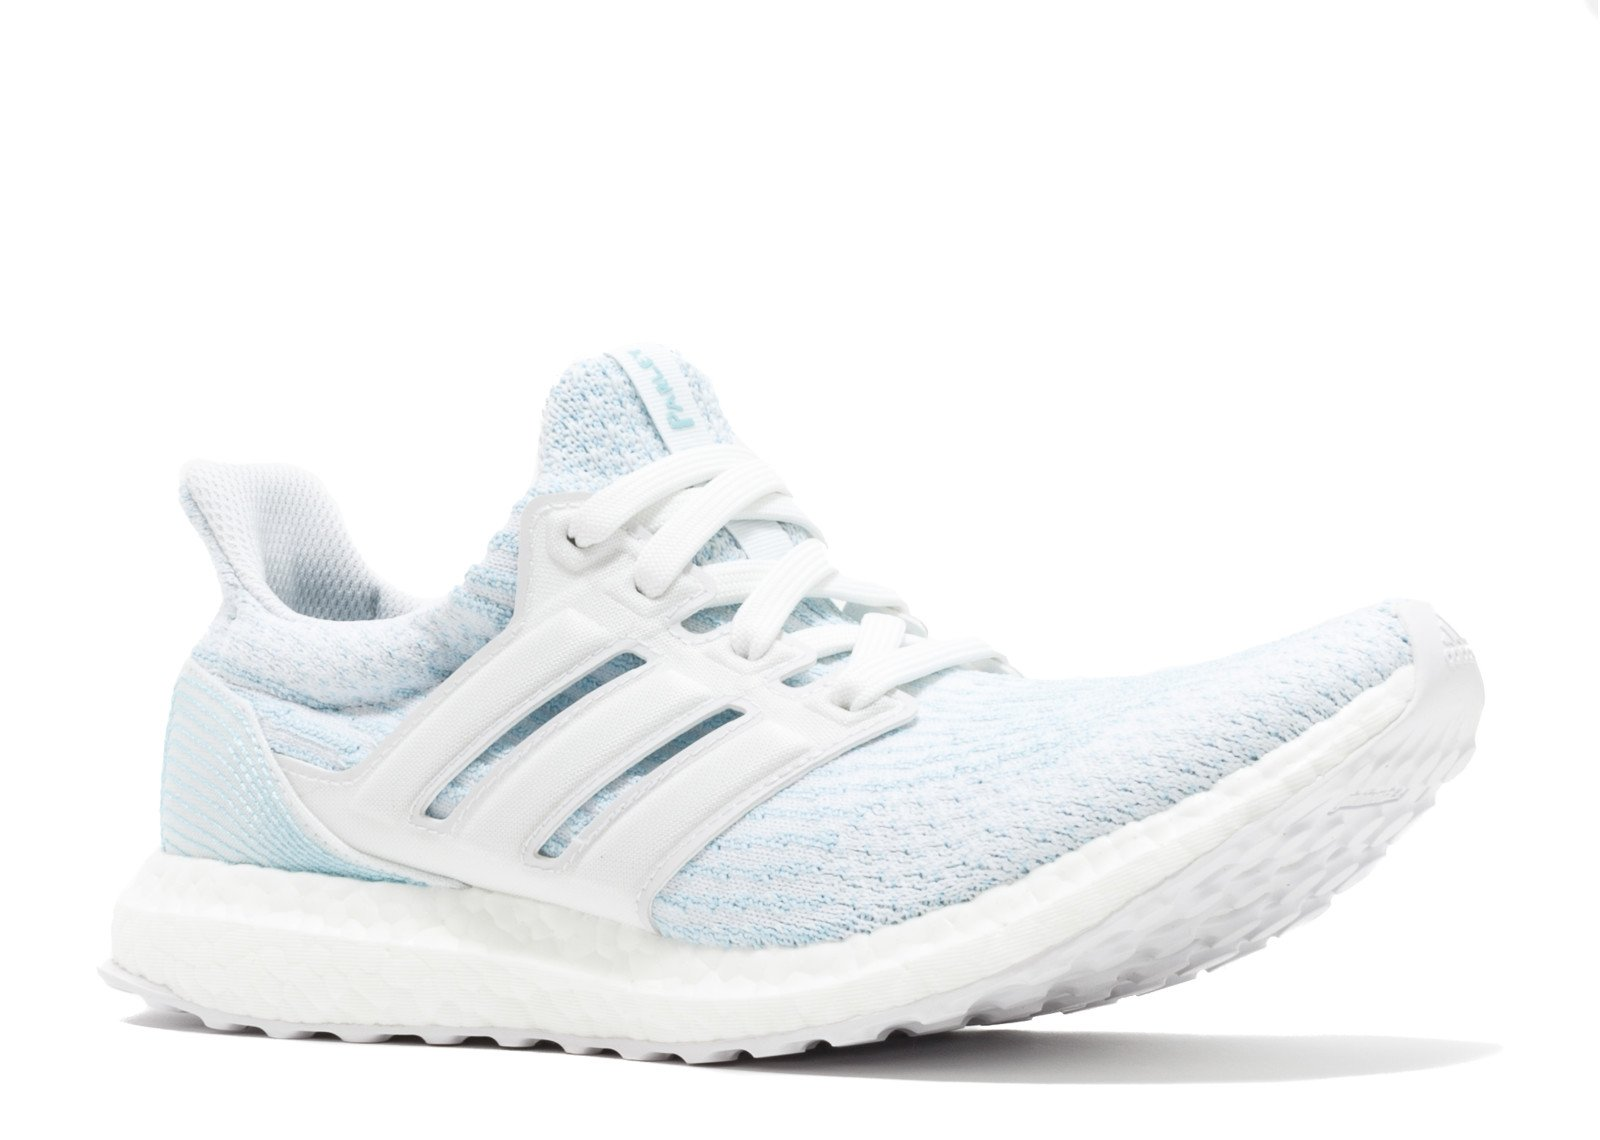 57c8a6c6fe83e Galleon - Adidas Ultraboost 3.0 Parley Shoe Men s Running 9.5 Cloud White-Icey  Blue